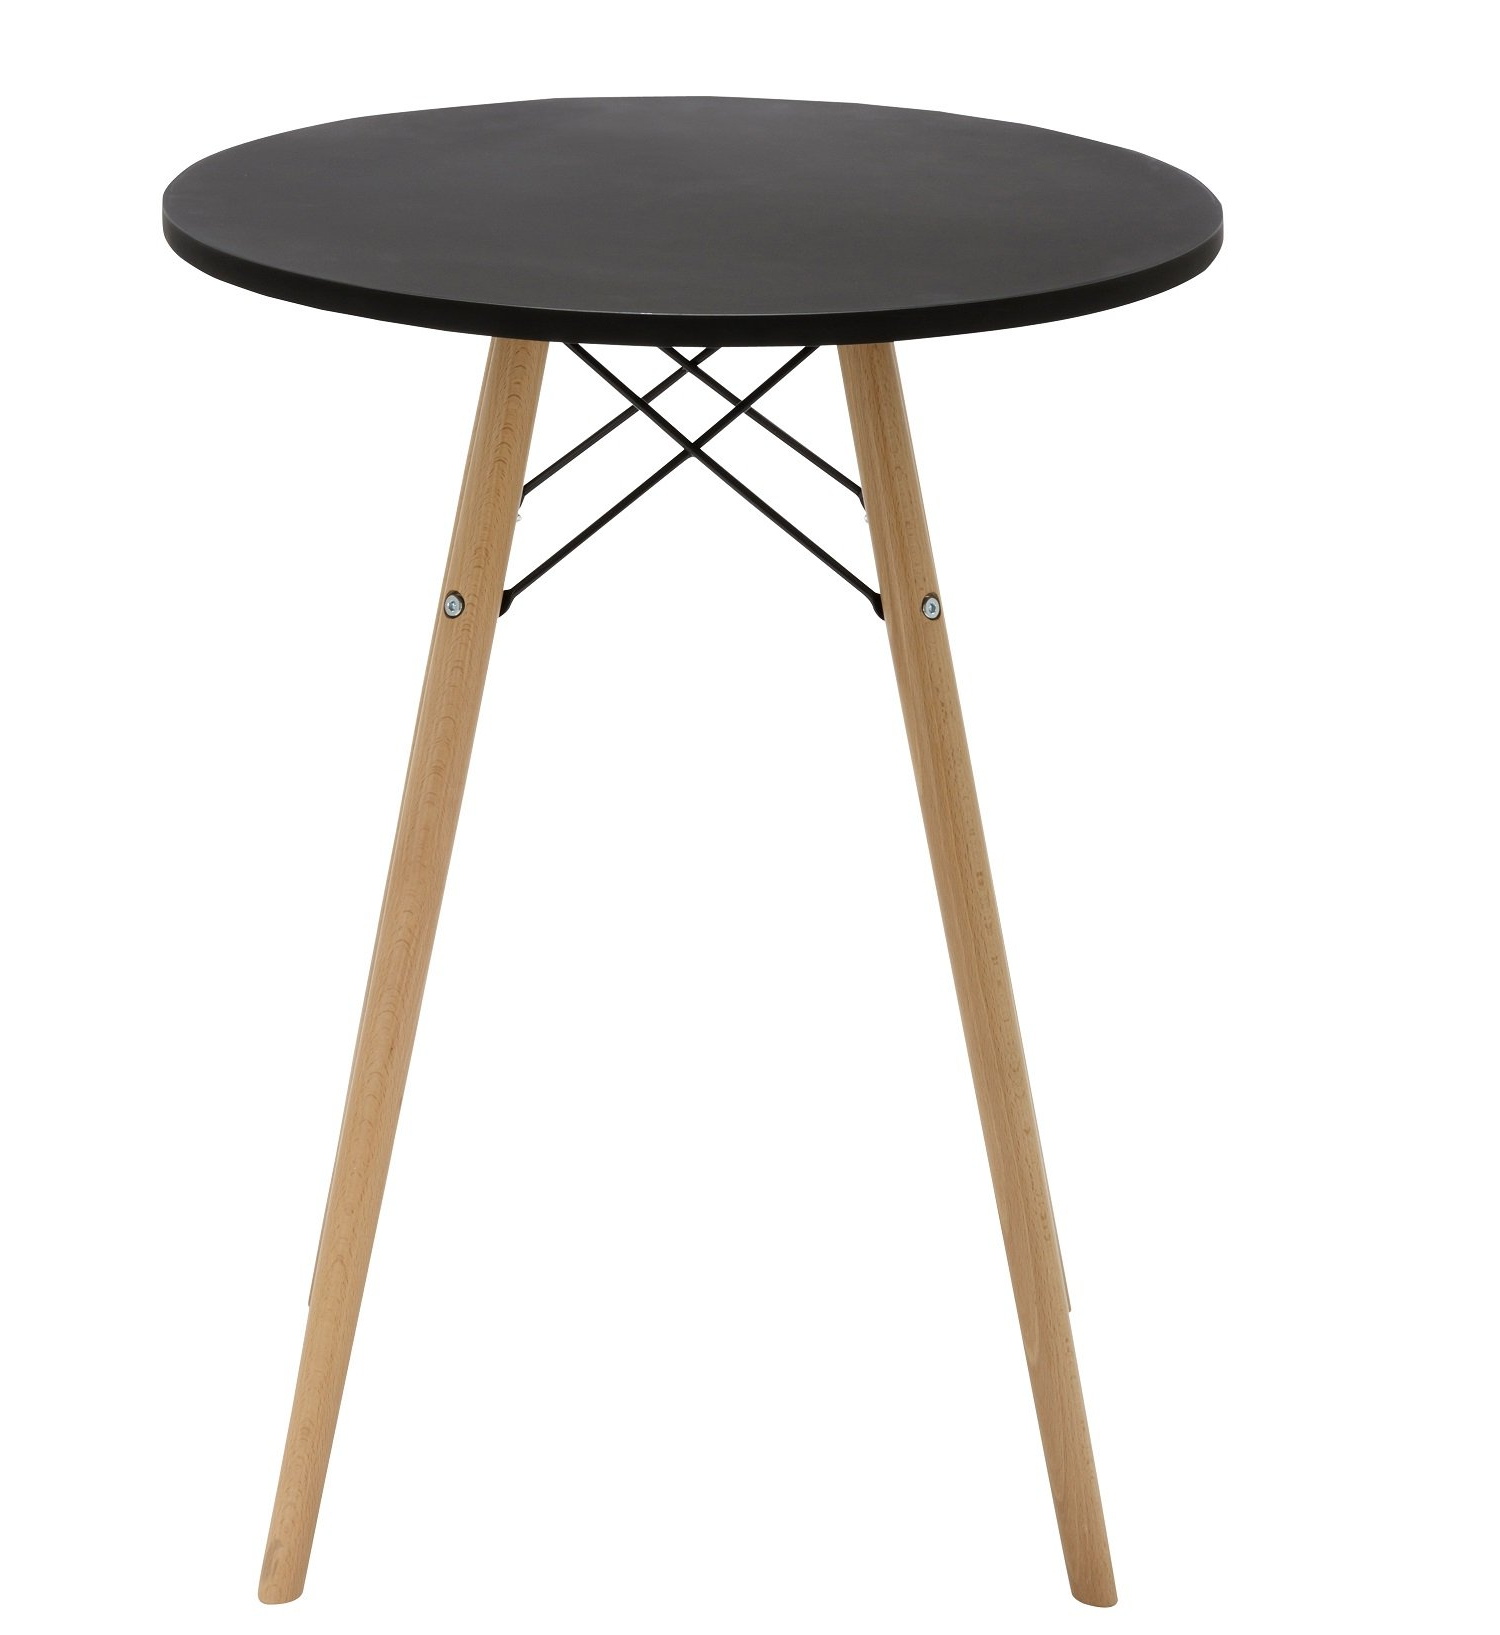 "Eames Style Dining Tables With Wooden Legs Pertaining To Well Known Duhome 24"" Round Dining Table Mdf Top Wooden Leg Stylish (View 10 of 30)"